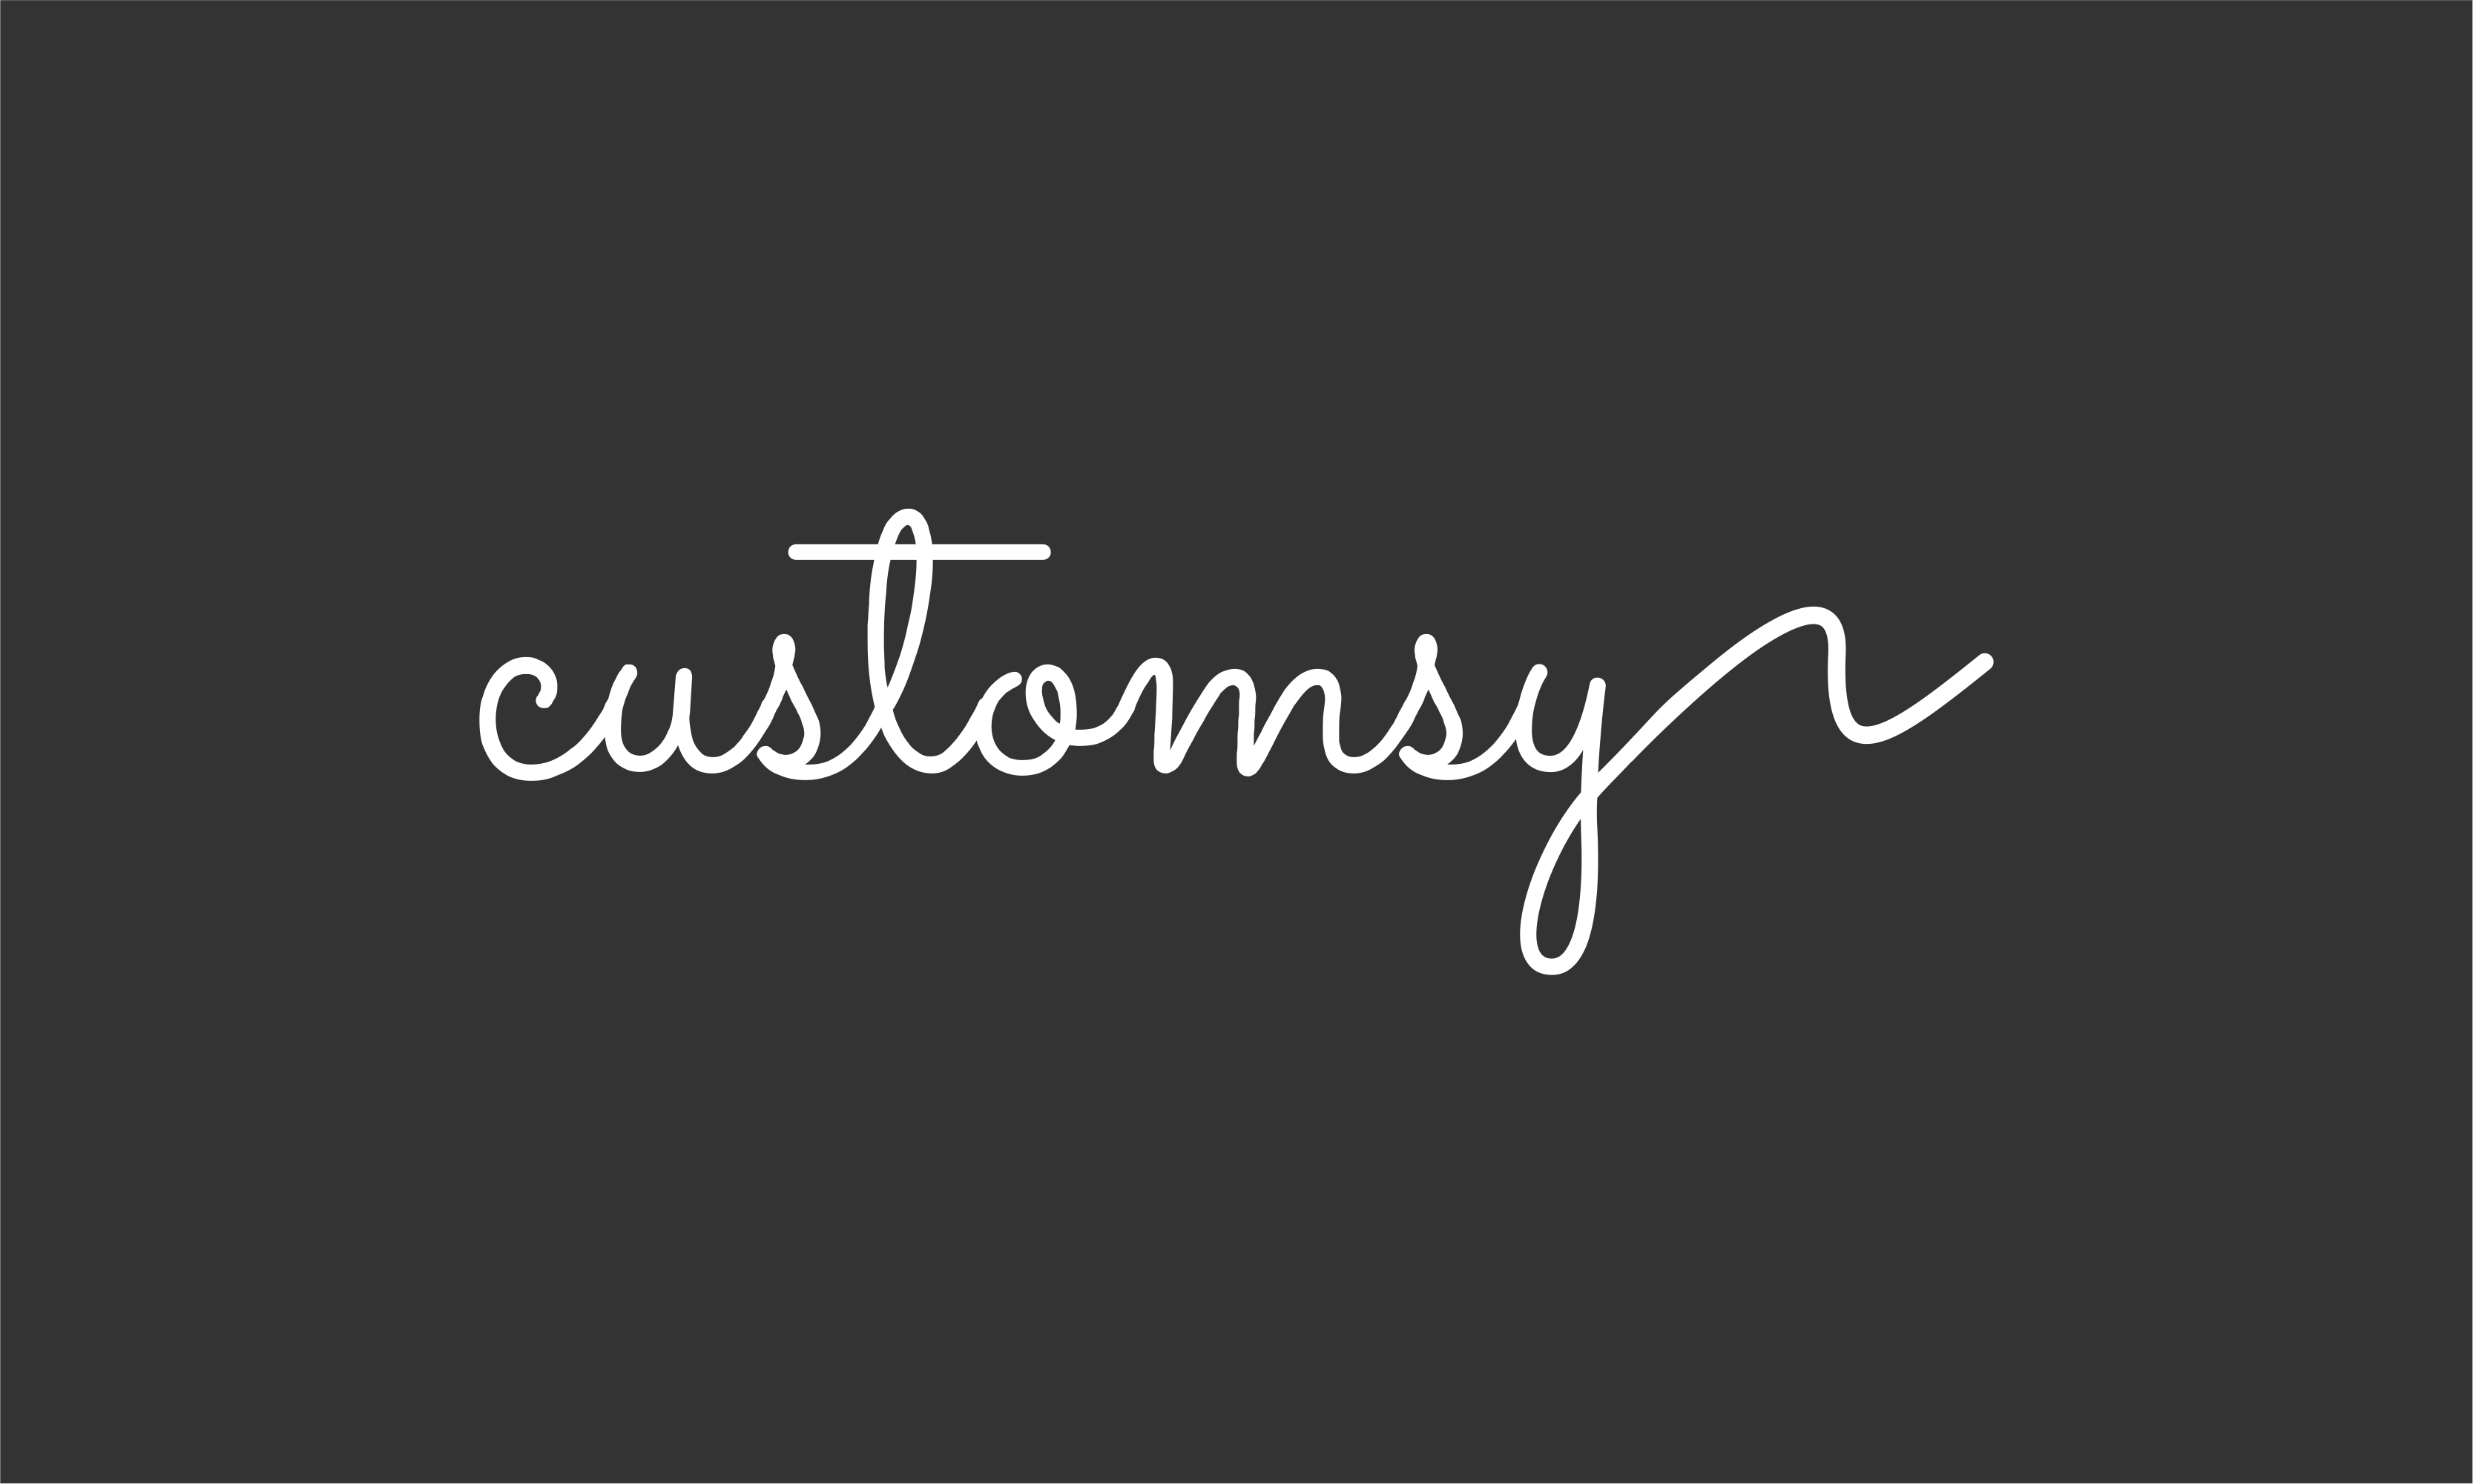 Customsy